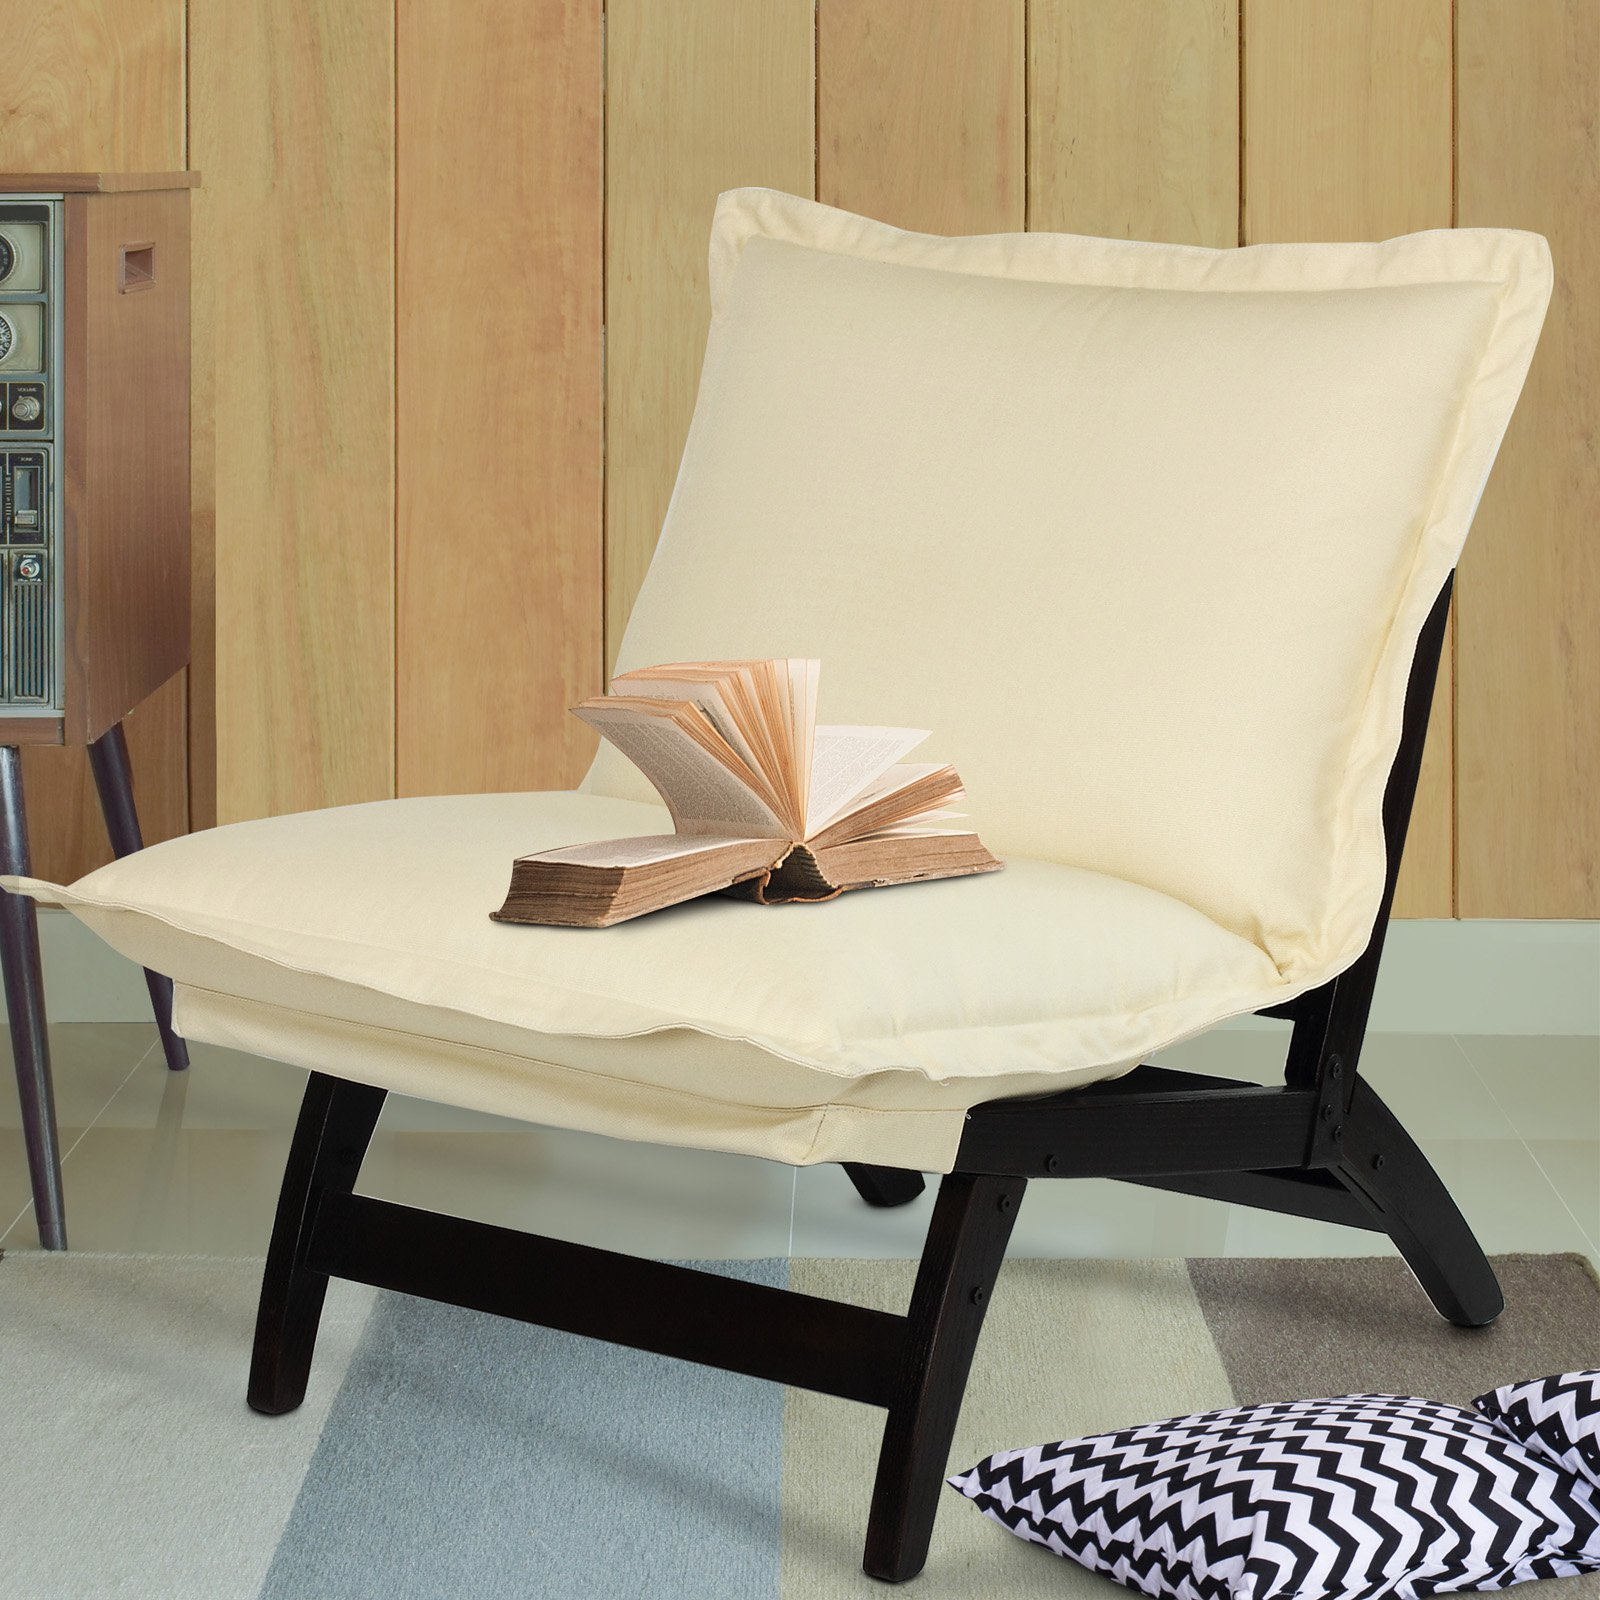 Casual Folding Lounger Chair-Espresso